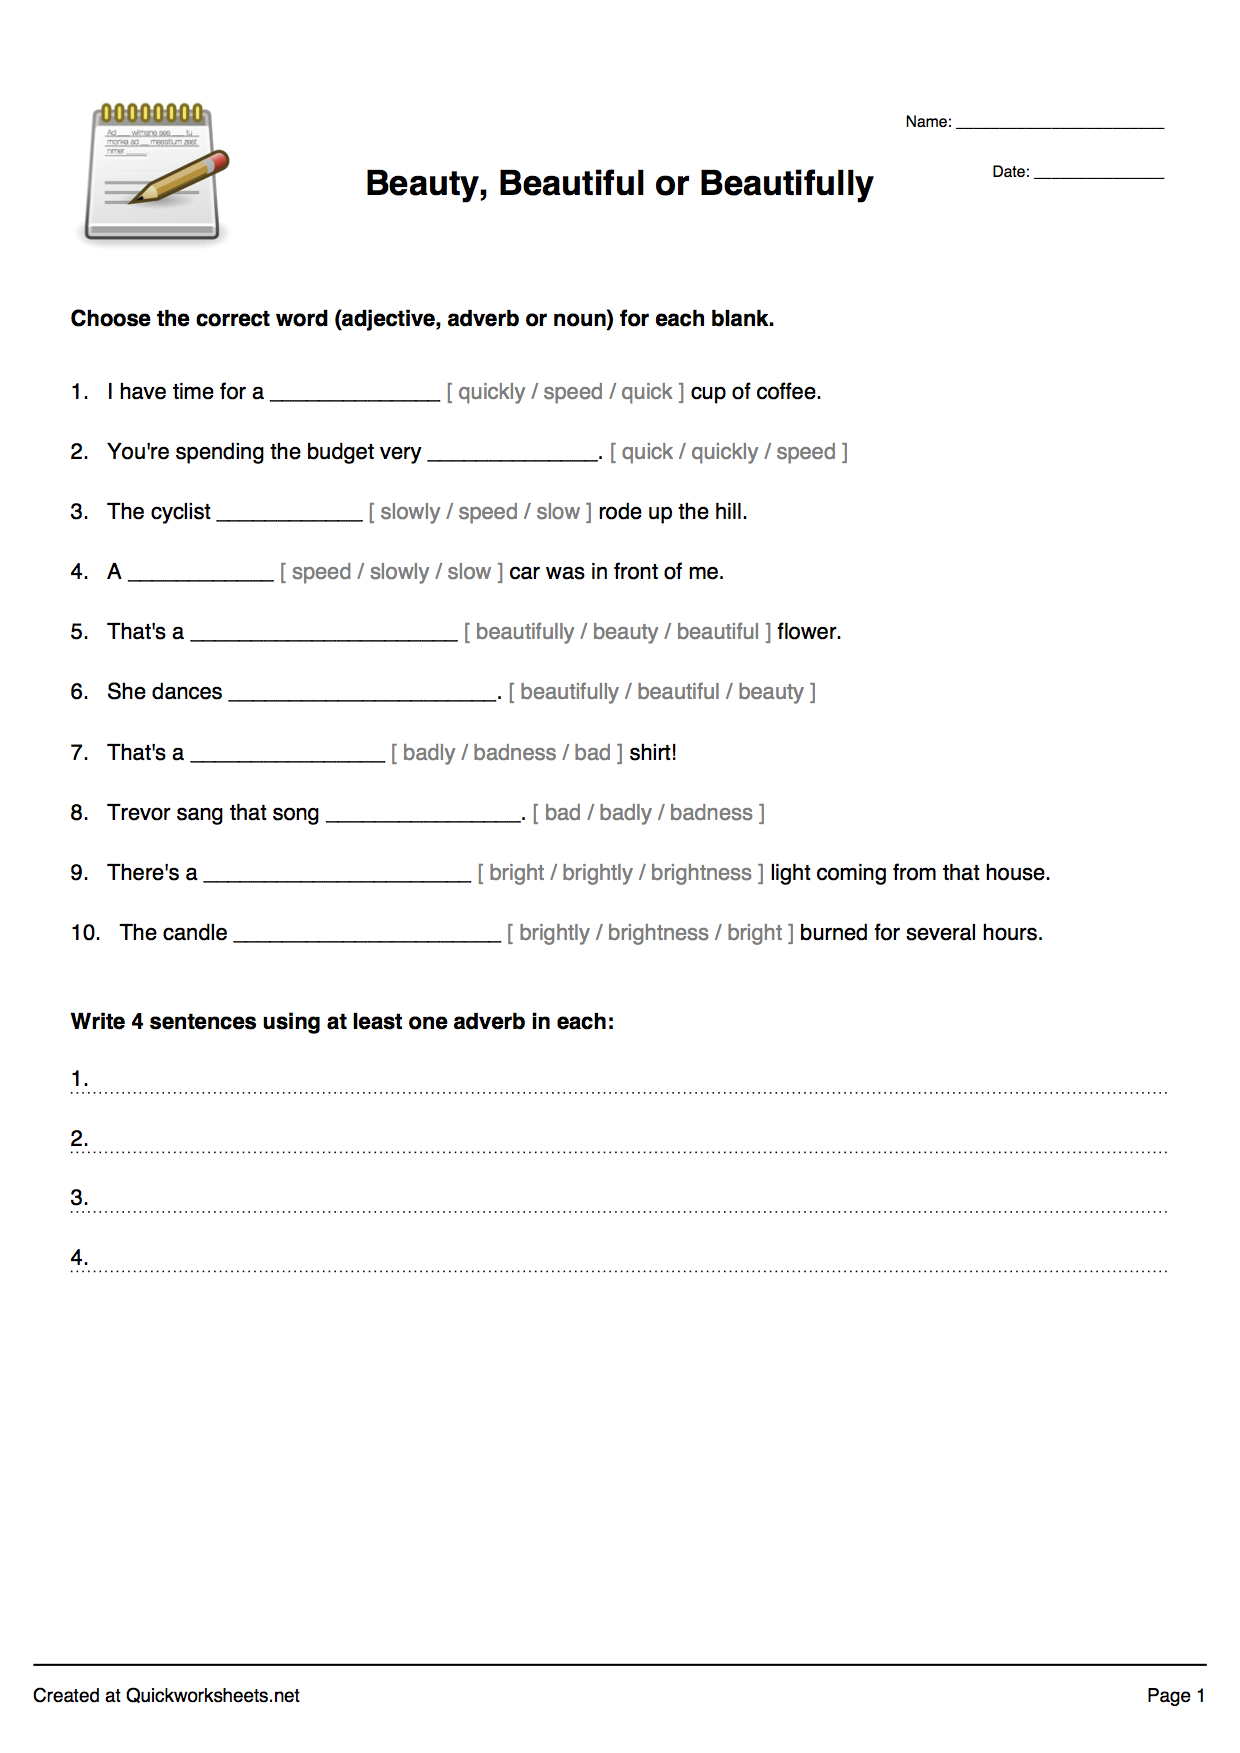 Free Printable Multiple Choice Spelling Test Maker